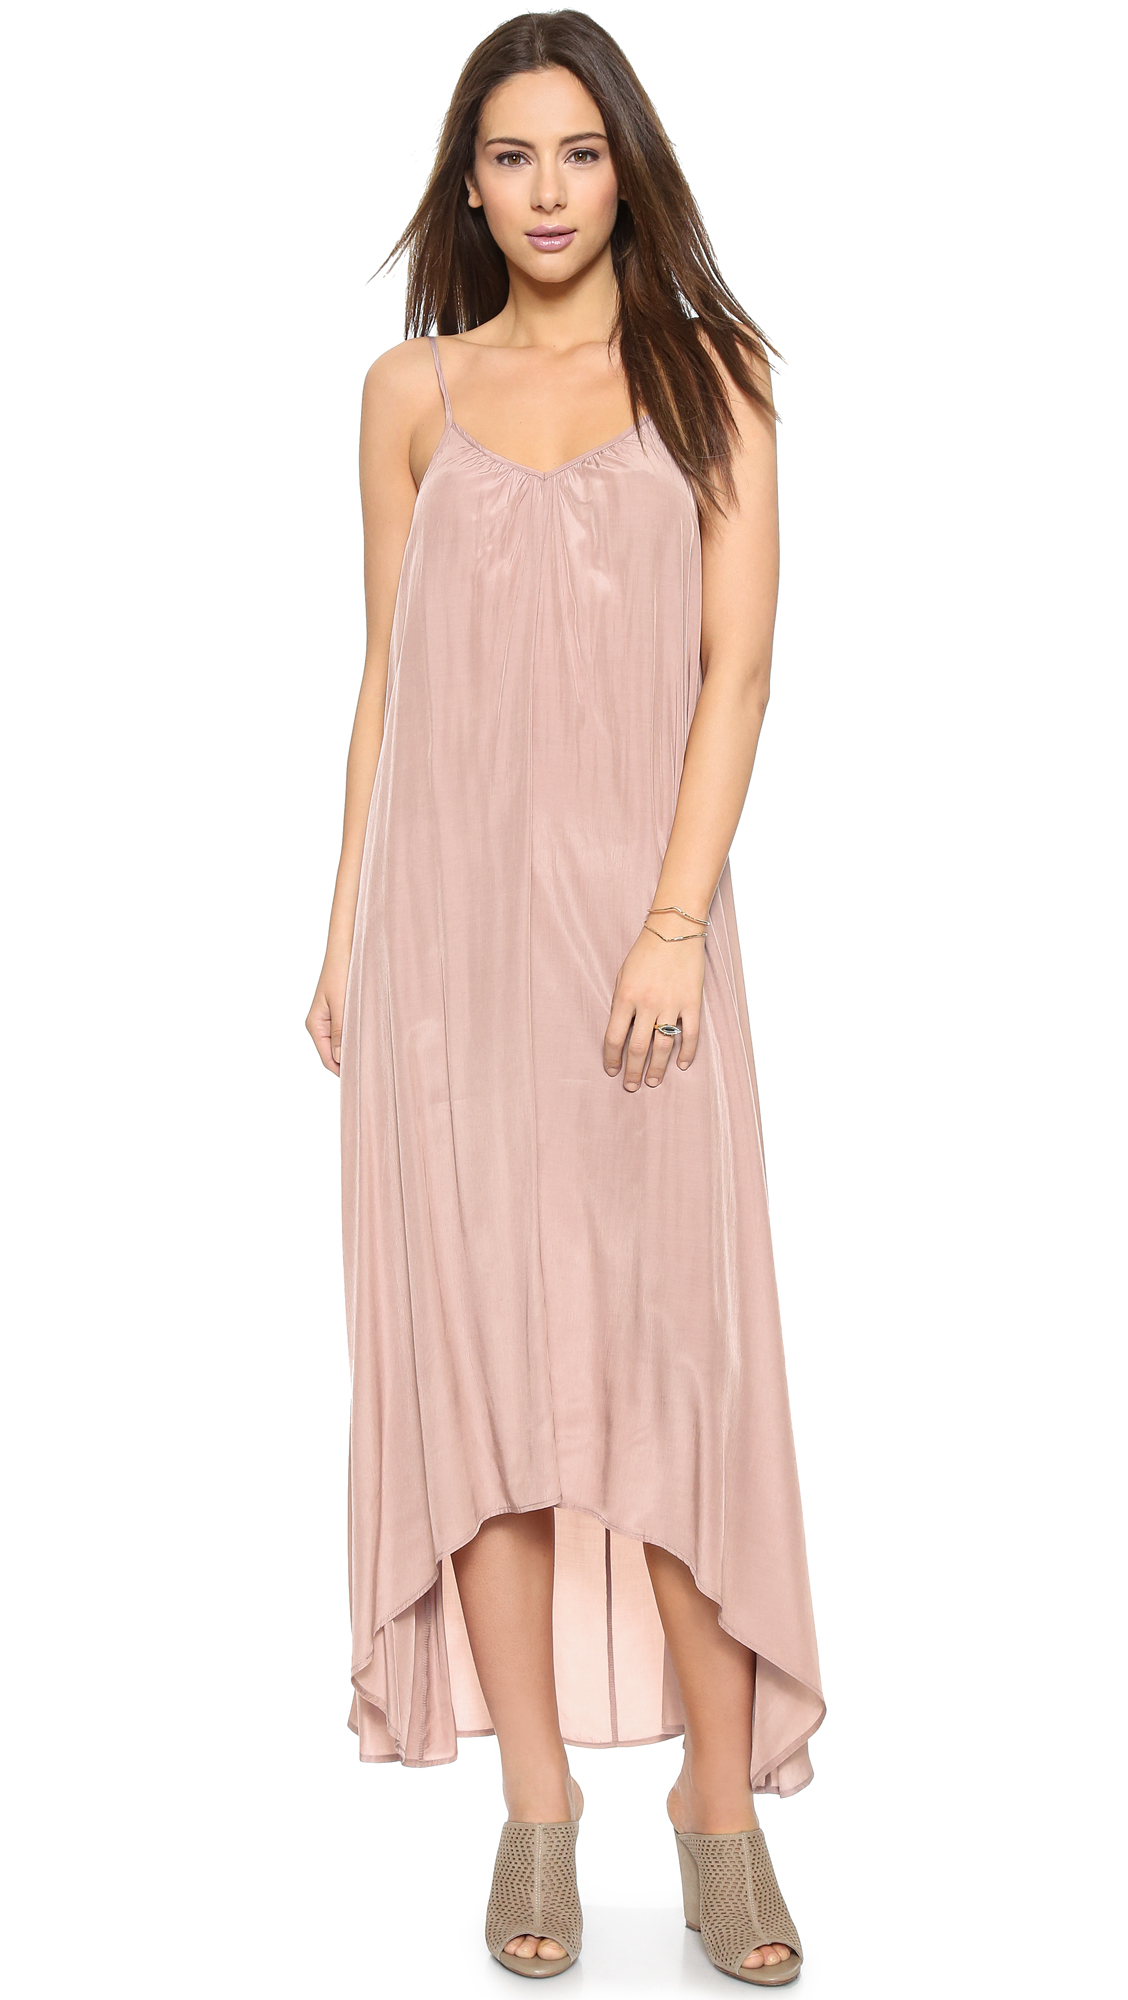 ONE by Resort Maxi Dress - Taupe